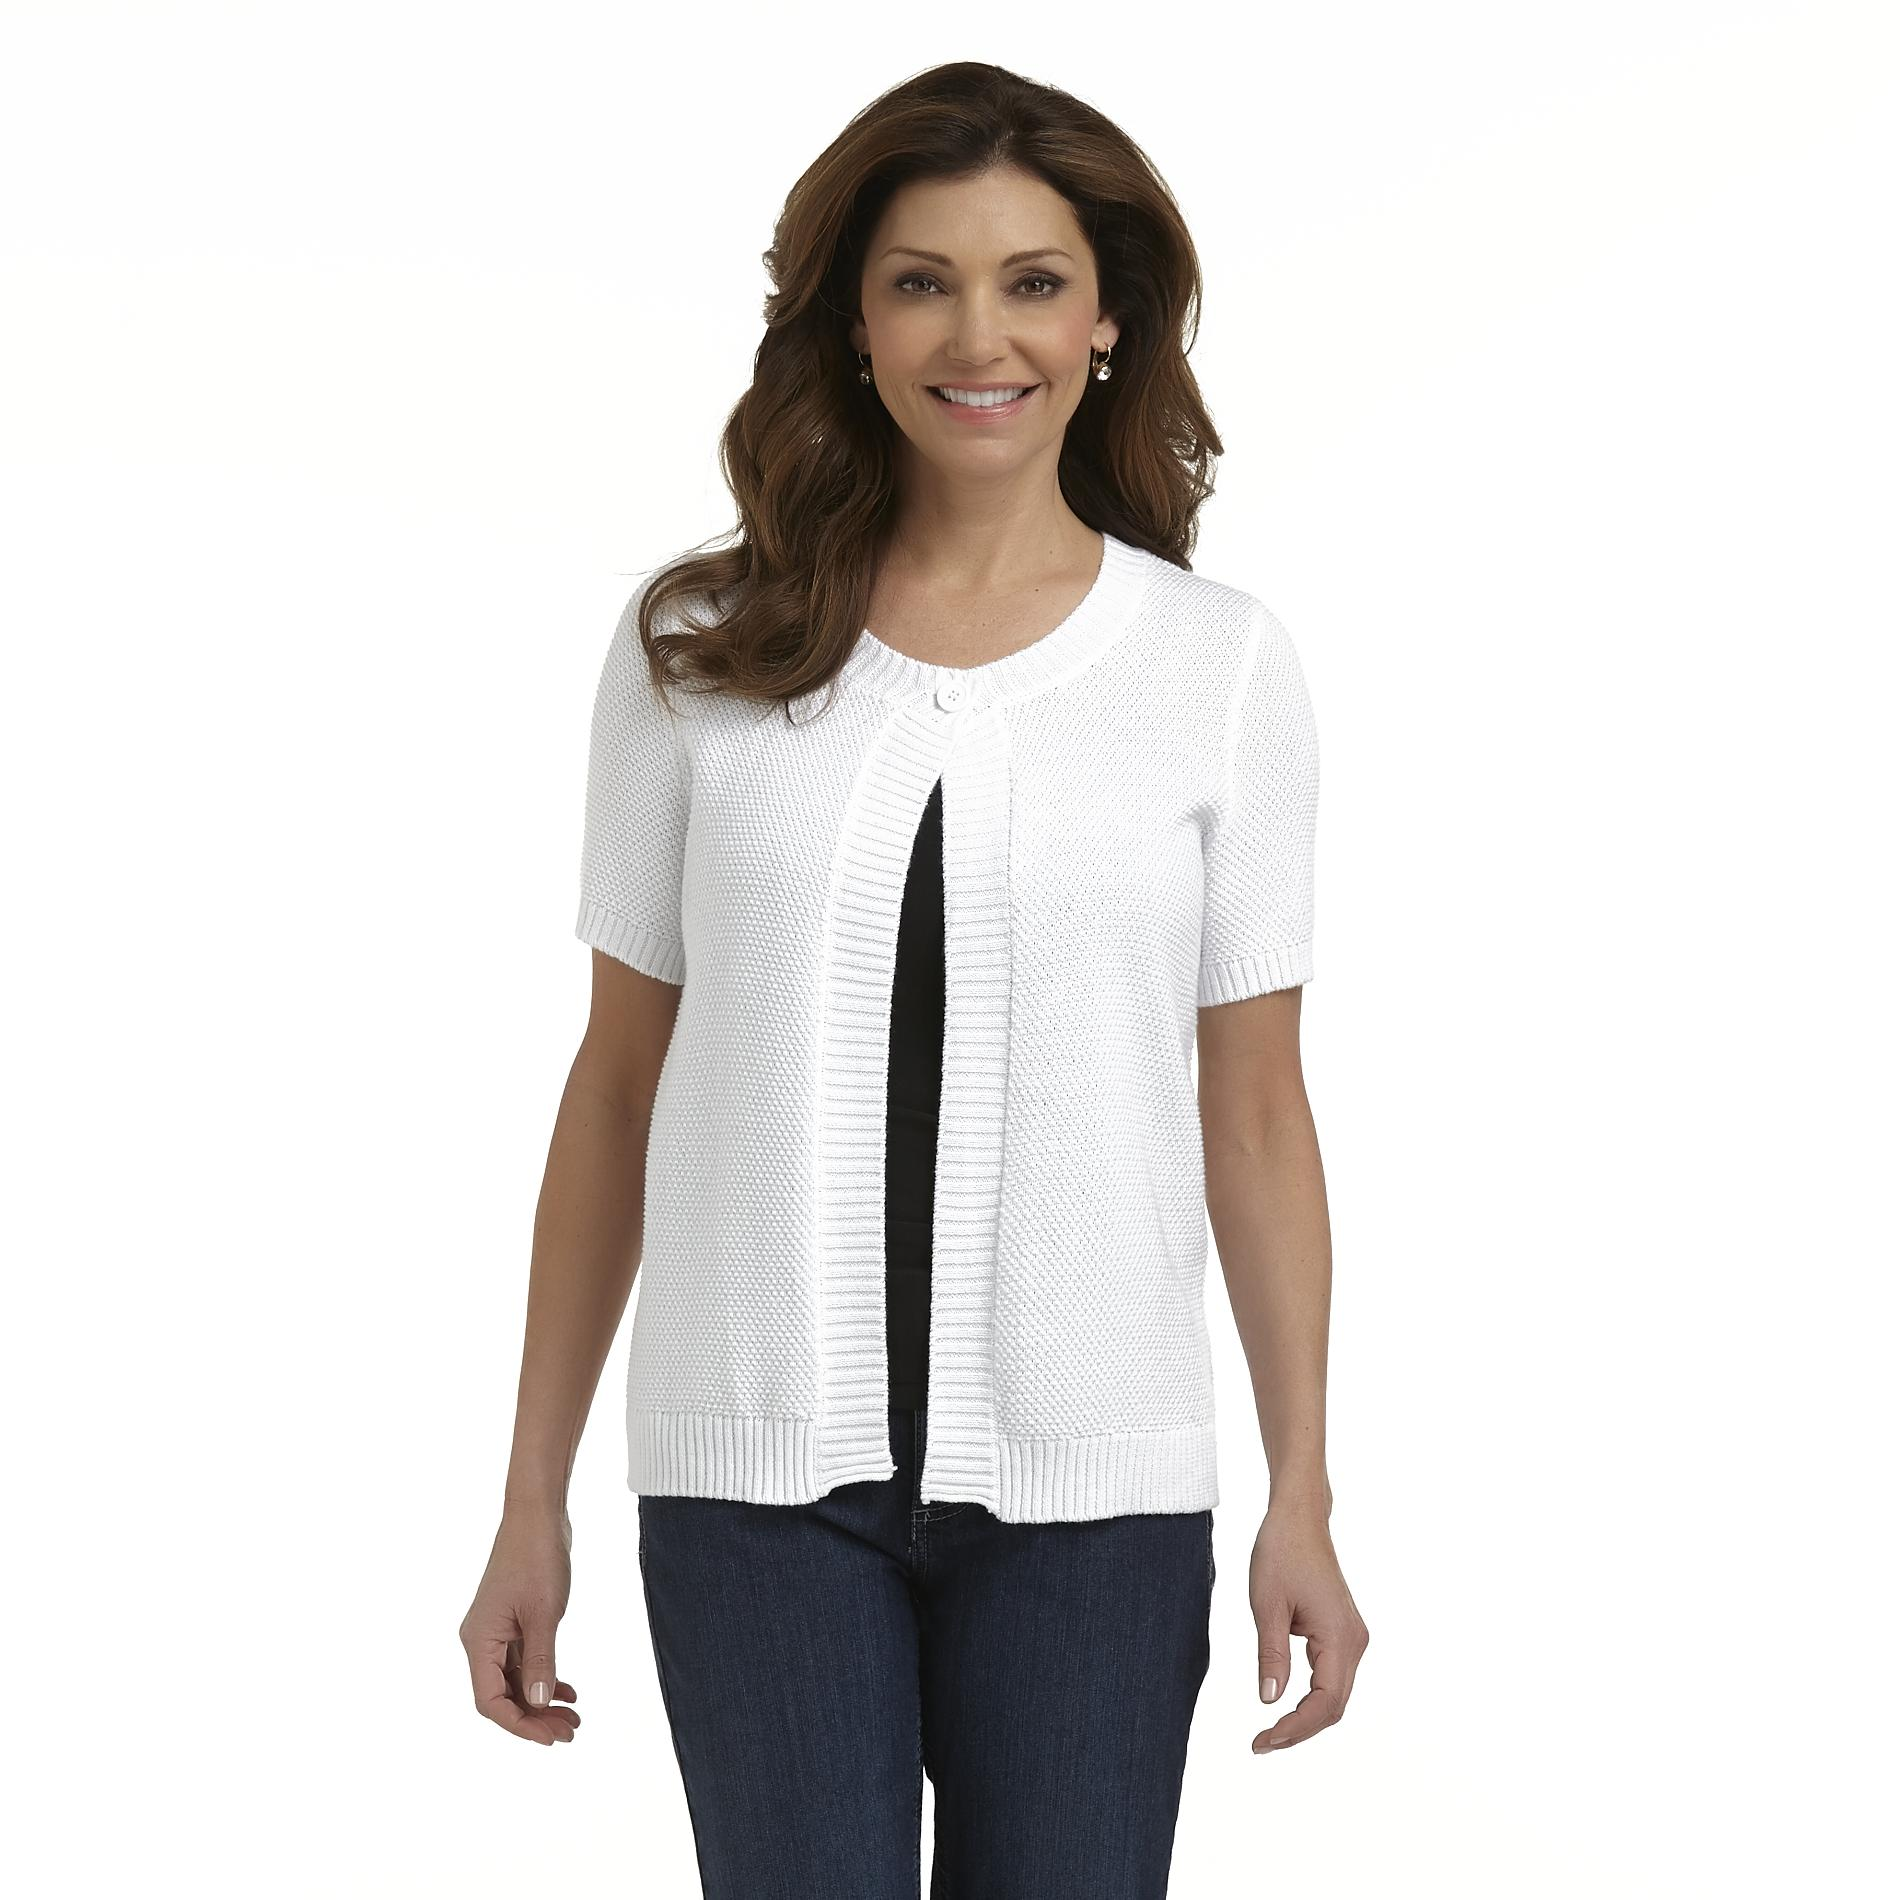 Basic Editions Women's Short-Sleeve Button Cardigan at Kmart.com